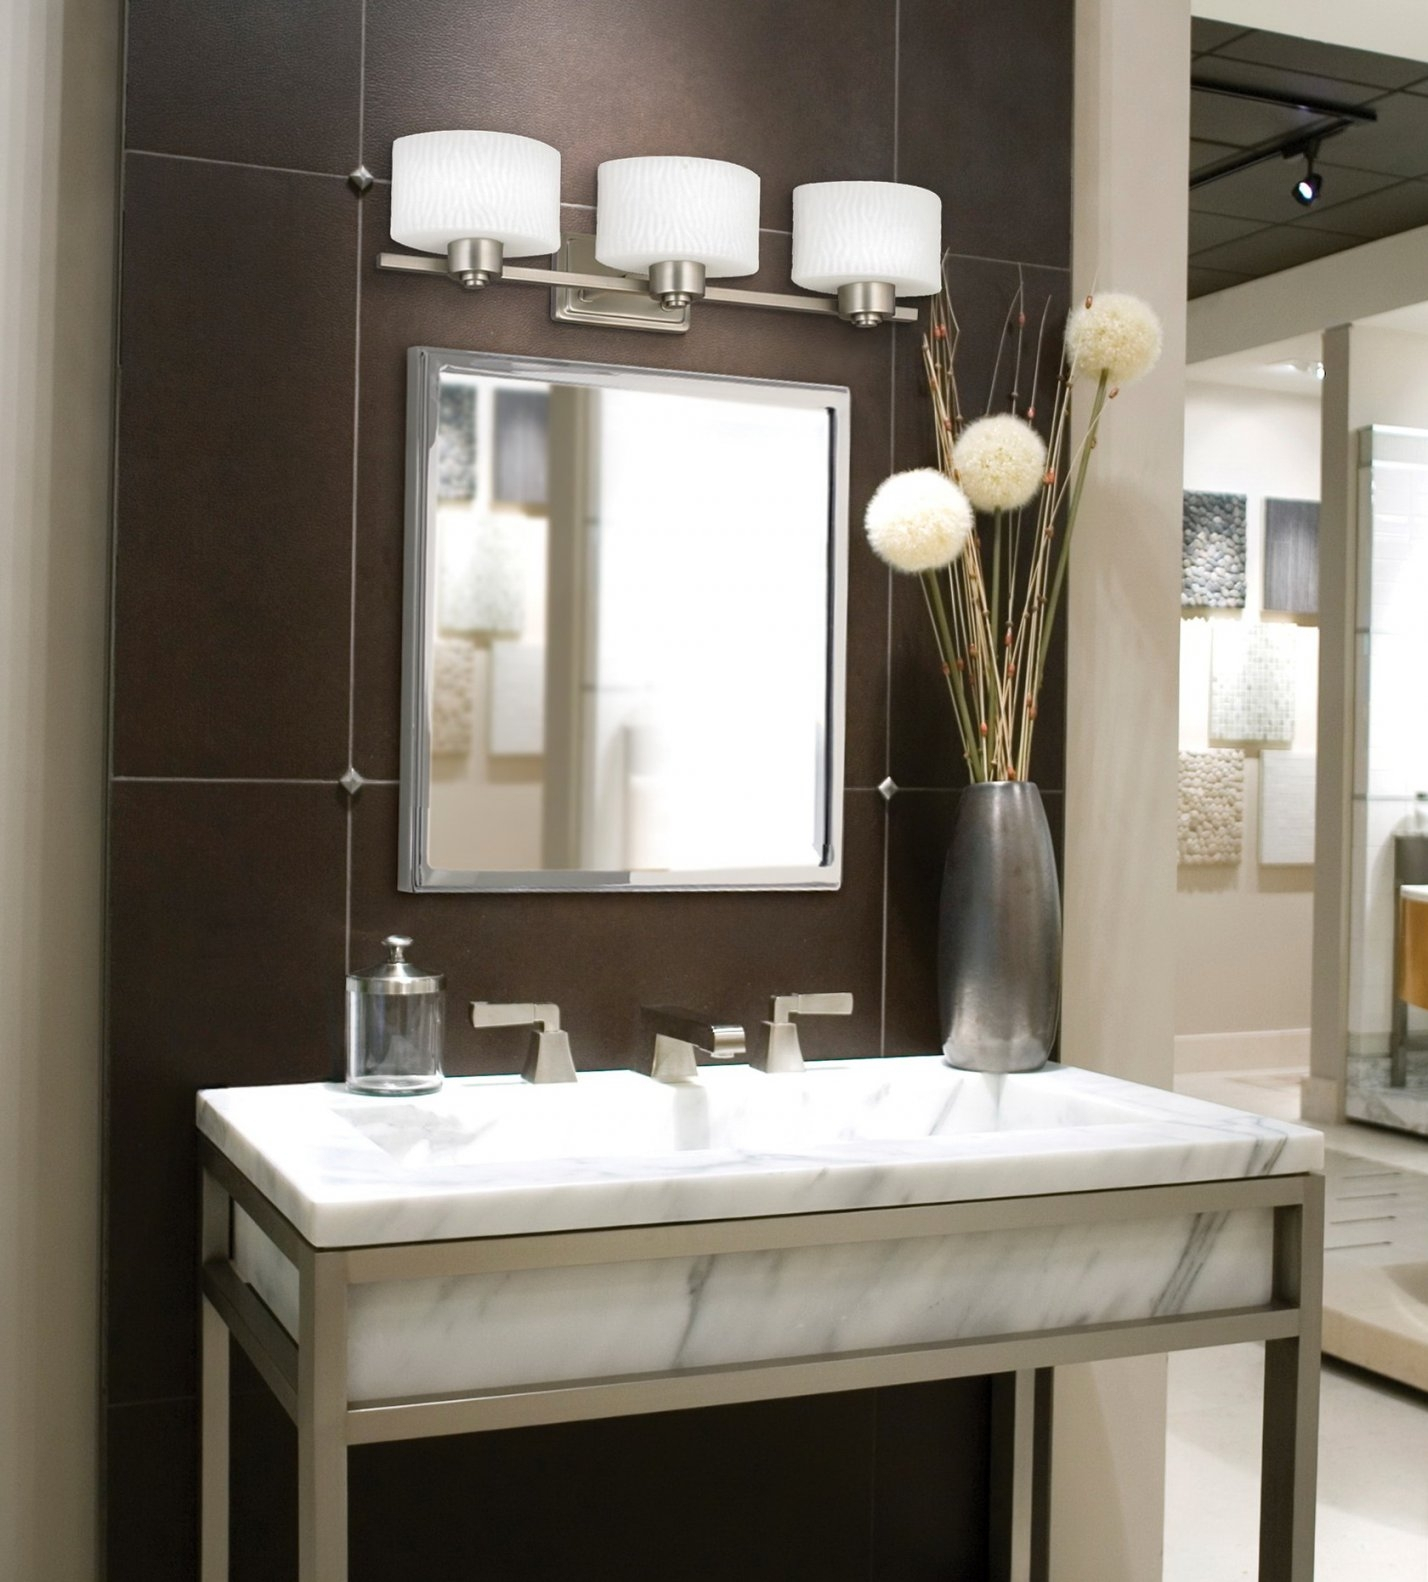 Awesome Bathroom Mirrors And Lights Ideas House Generation